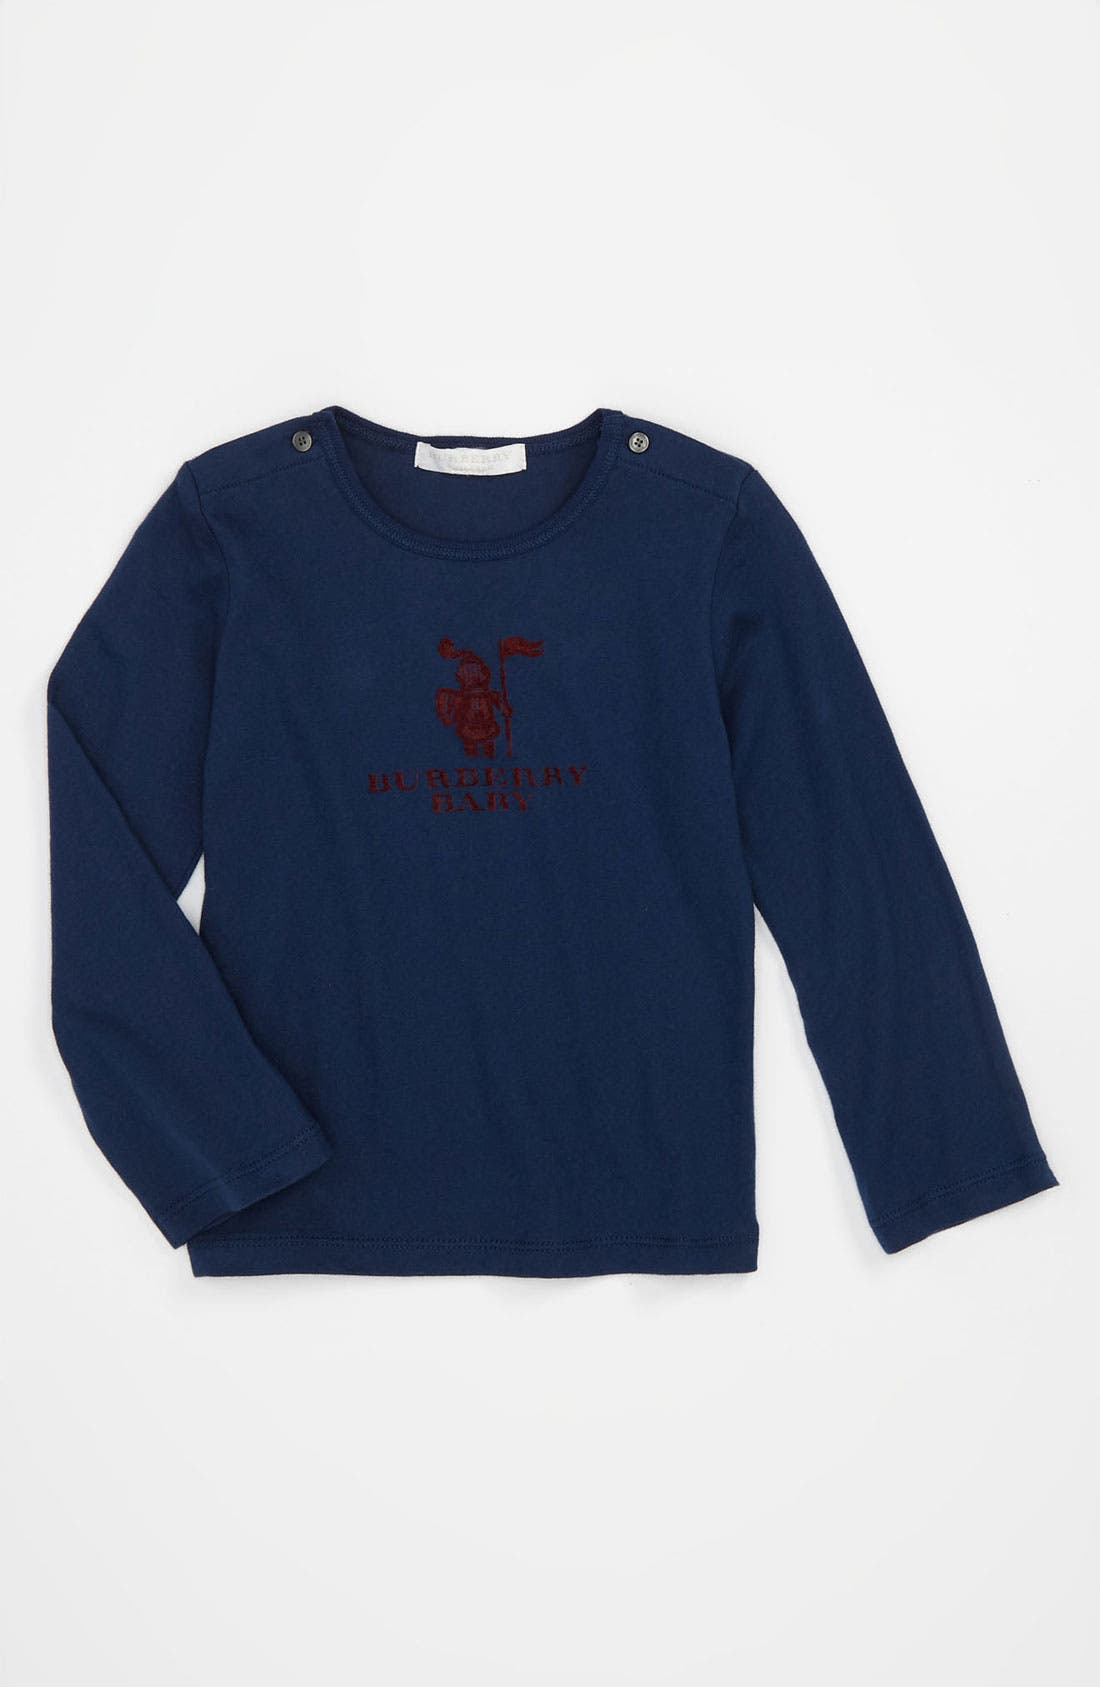 Alternate Image 1 Selected - Burberry Long Sleeve T-Shirt (Infant)